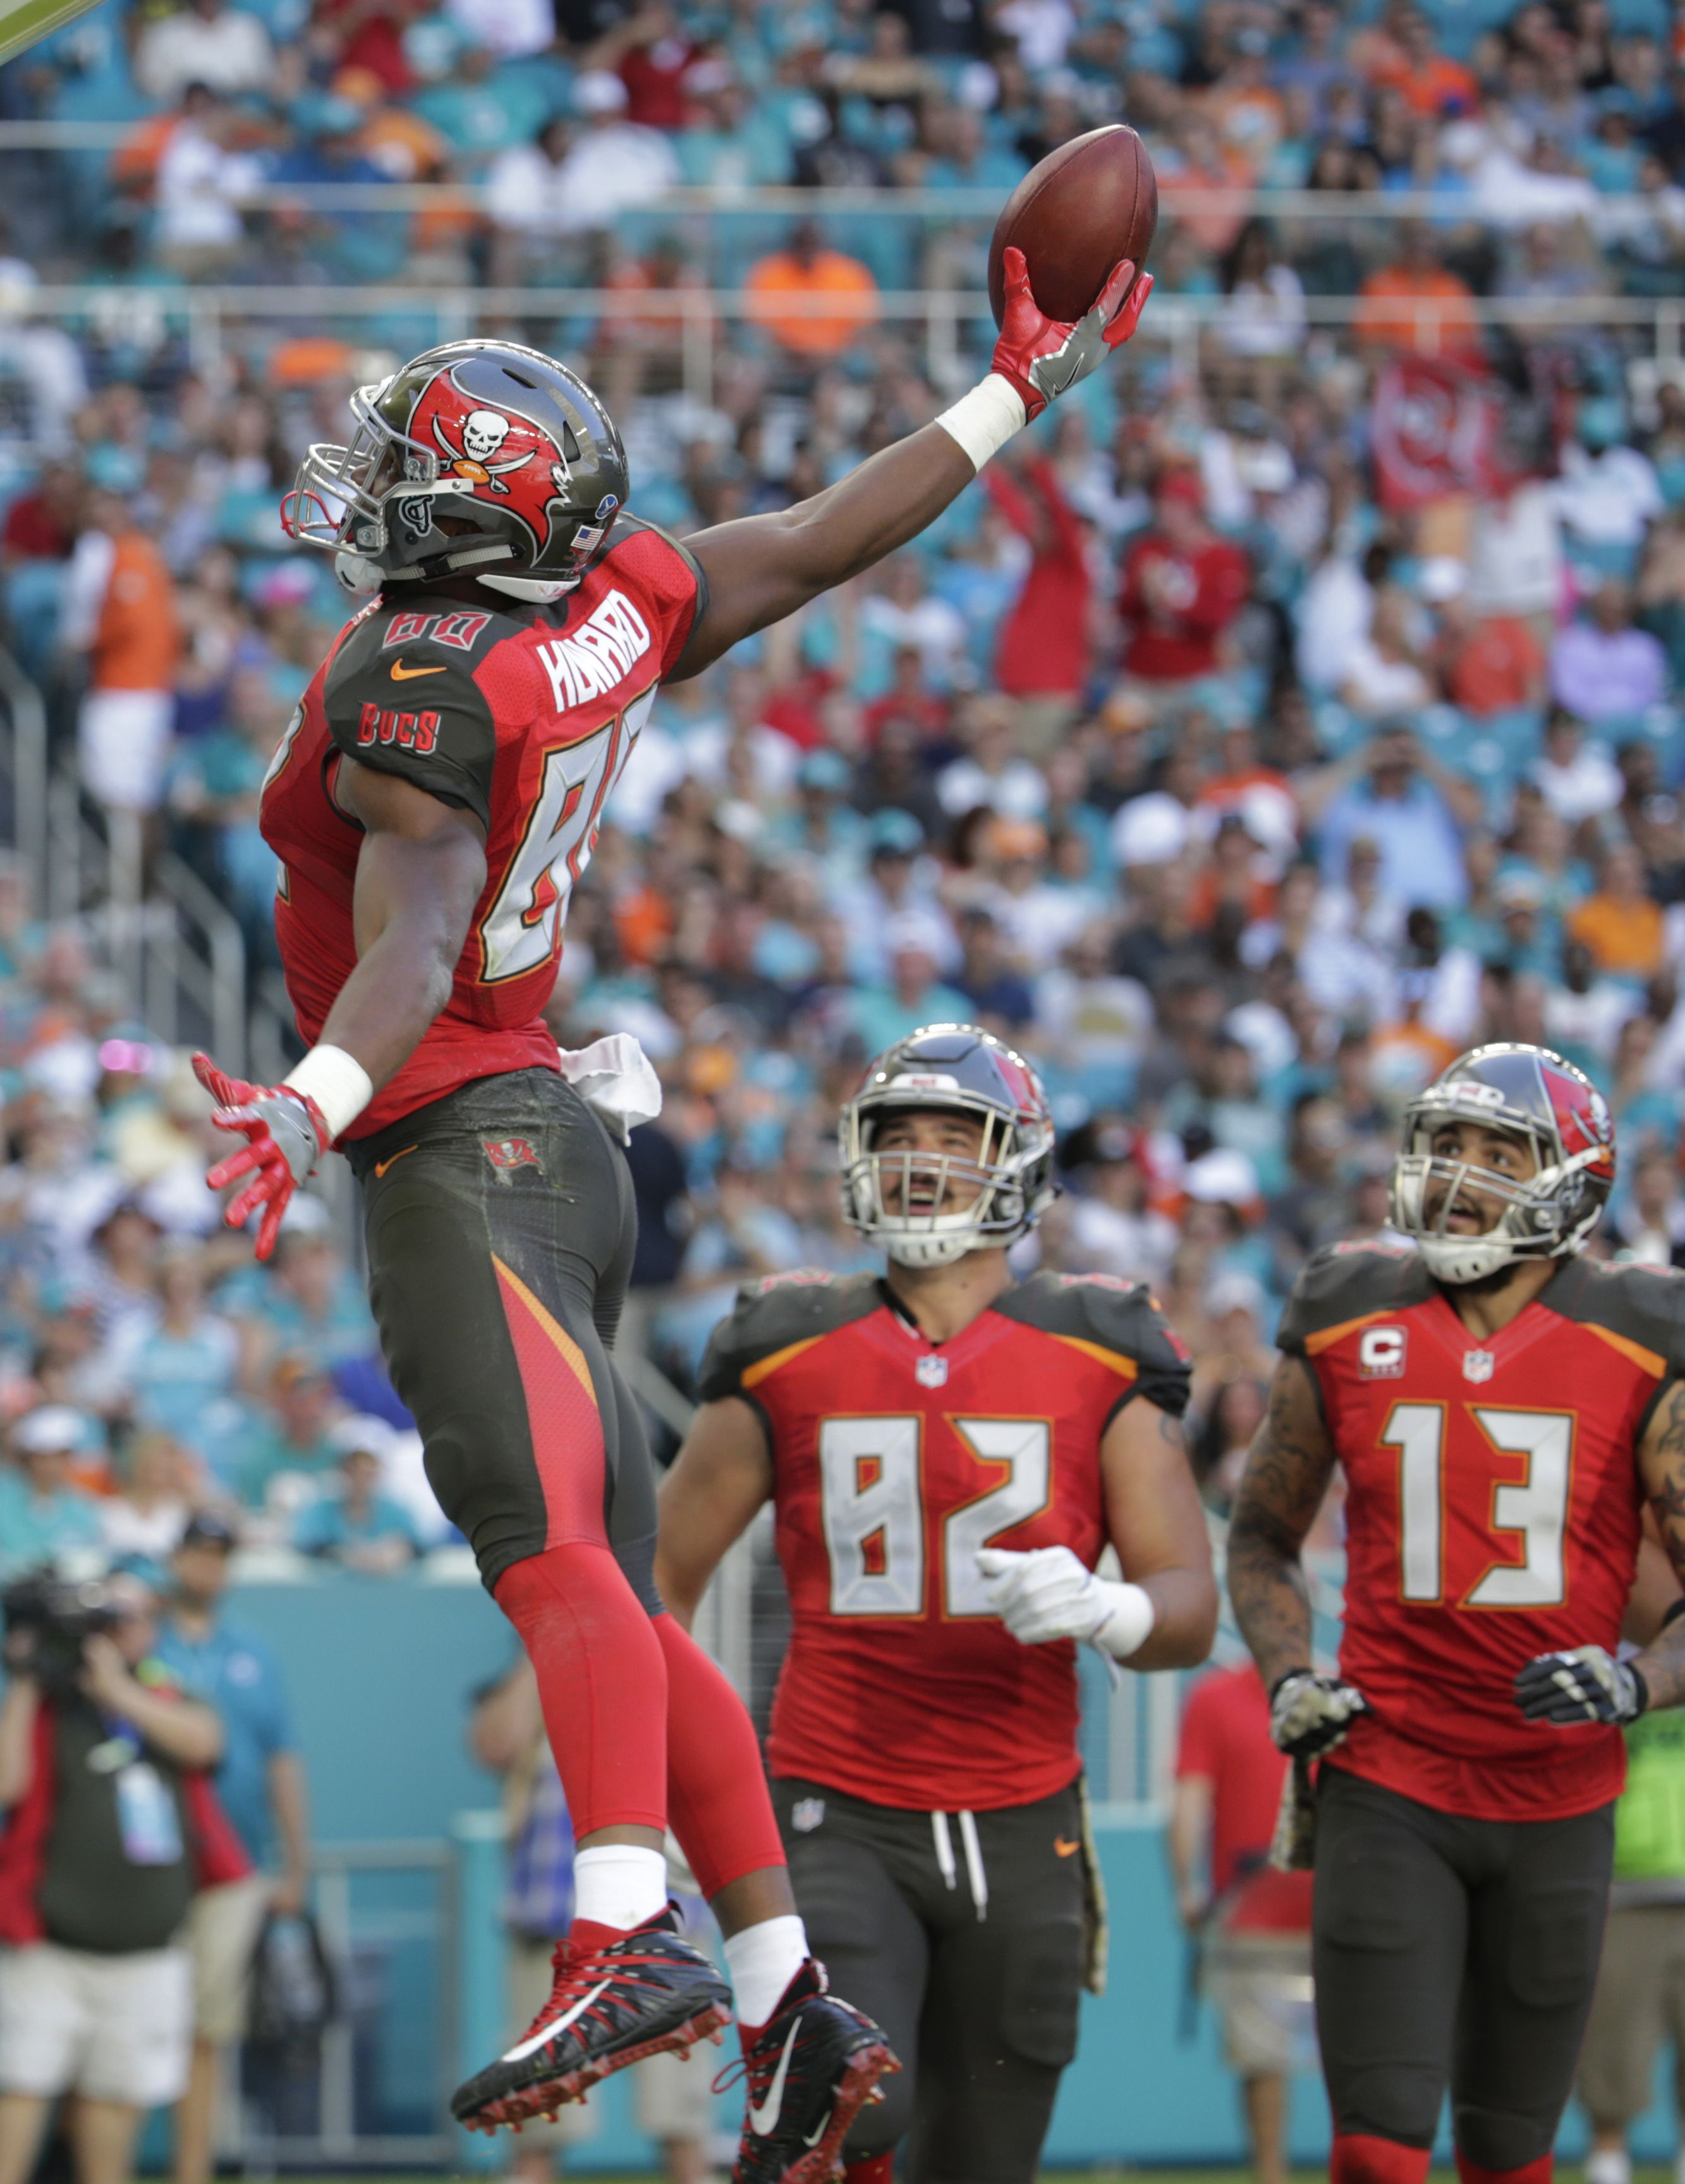 e7036b813 #TampaBay Buccaneers TE O.J. Howard throwing DOWN after he scores a  touchdown. (AP/Sladky)